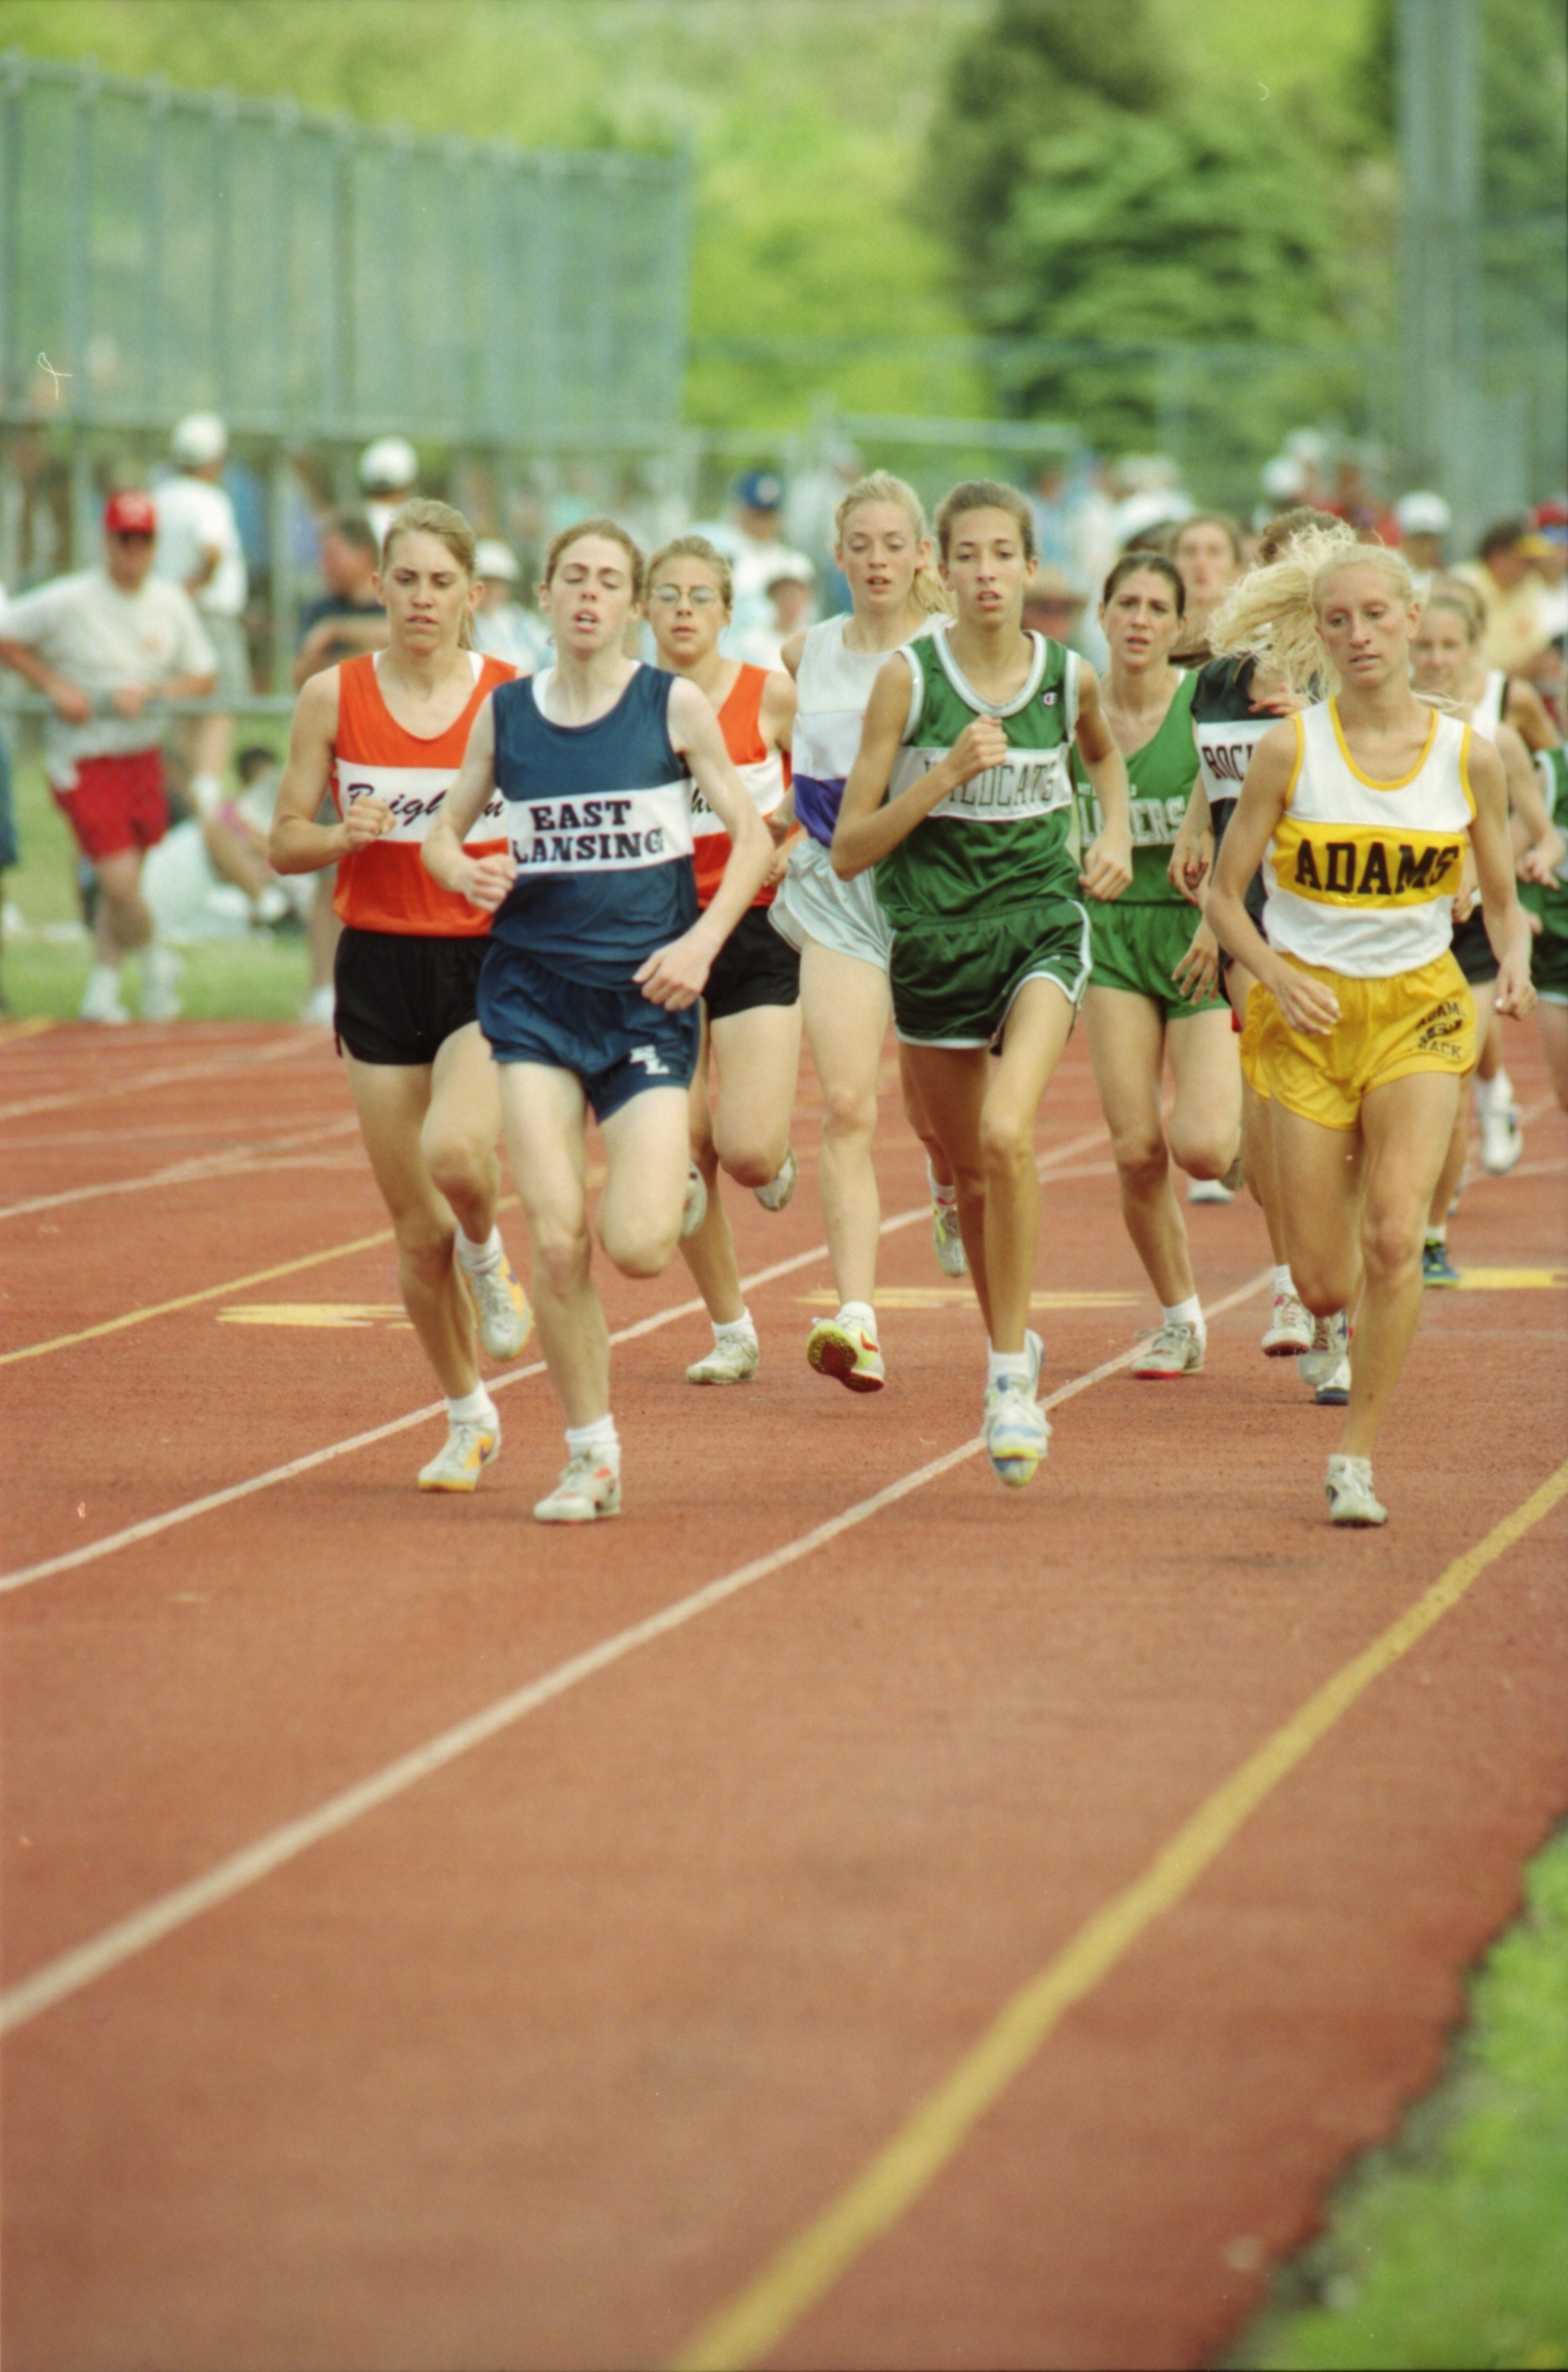 Frontrunners in Girls' State Track Meet, June 1994 image